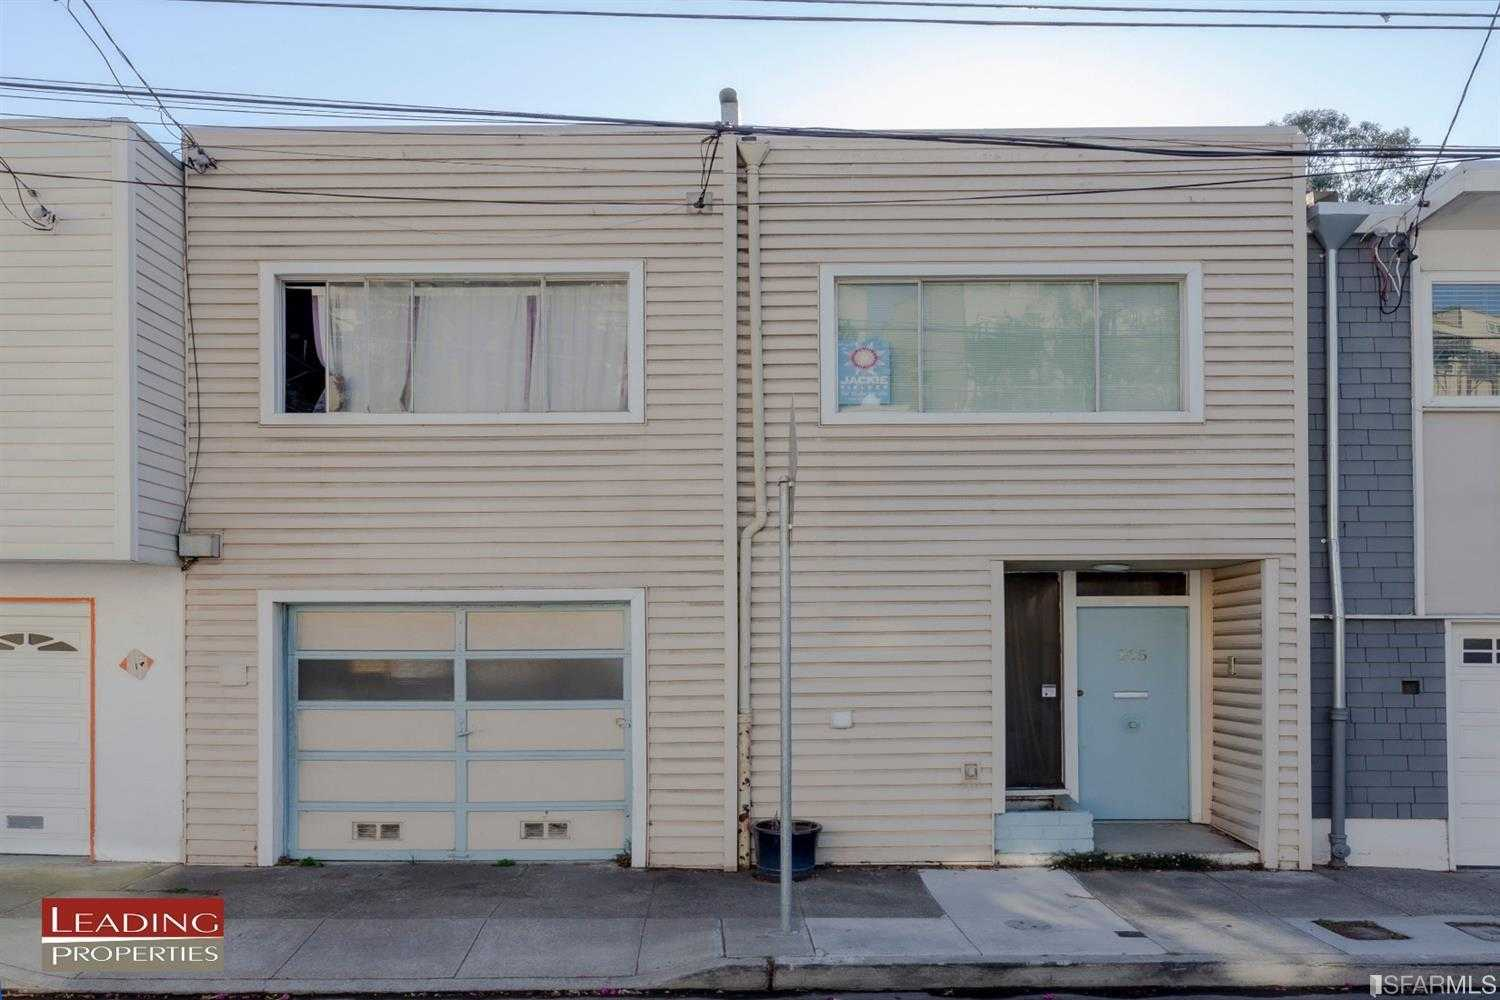 $900,000 - 2Br/2Ba -  for Sale in San Francisco